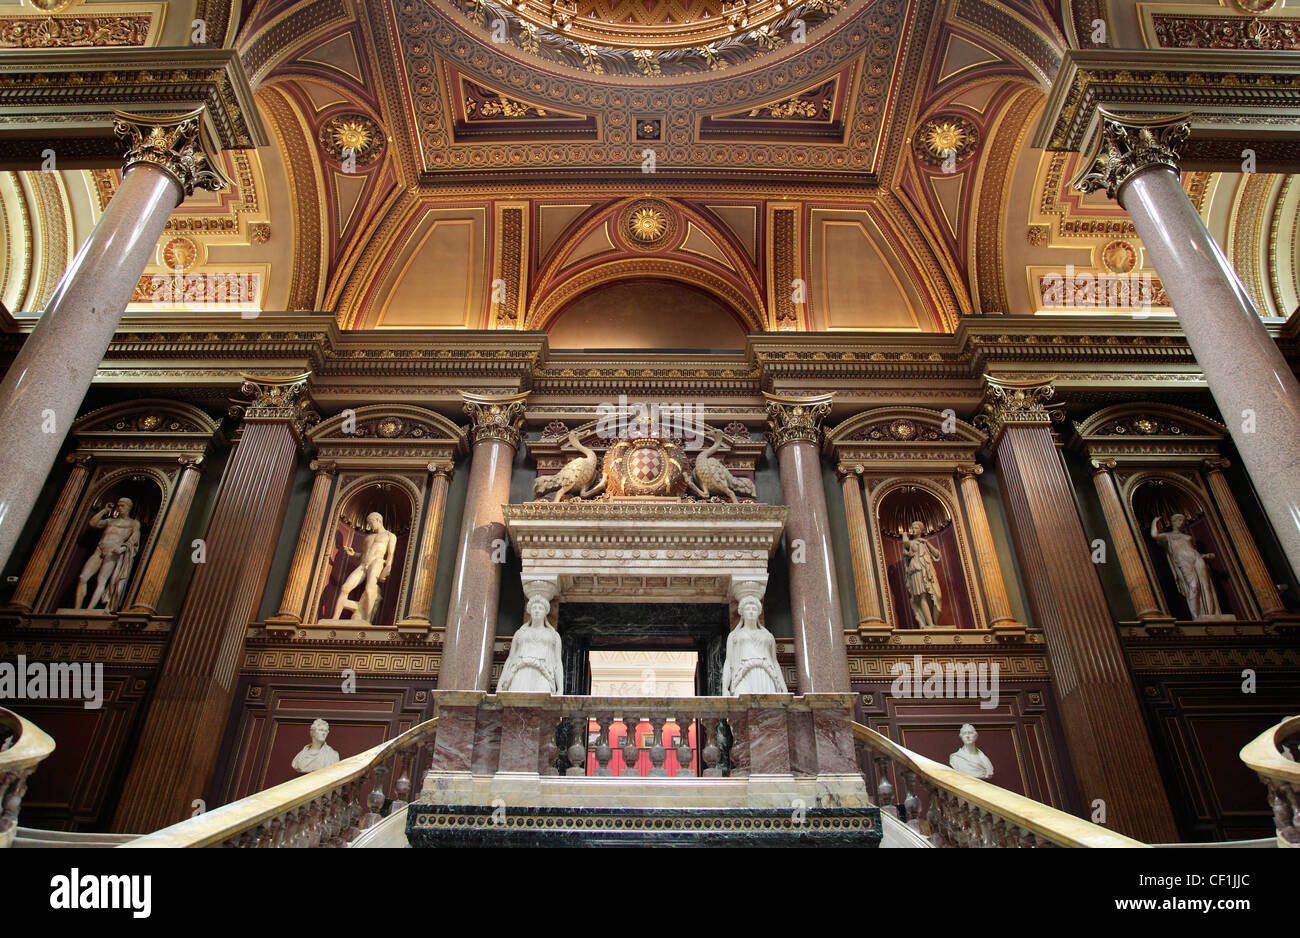 Neo-classical statuary on display in the Founder's Entrance Hall of the Fitzwilliam Museum, Cambridge. - Stock Image